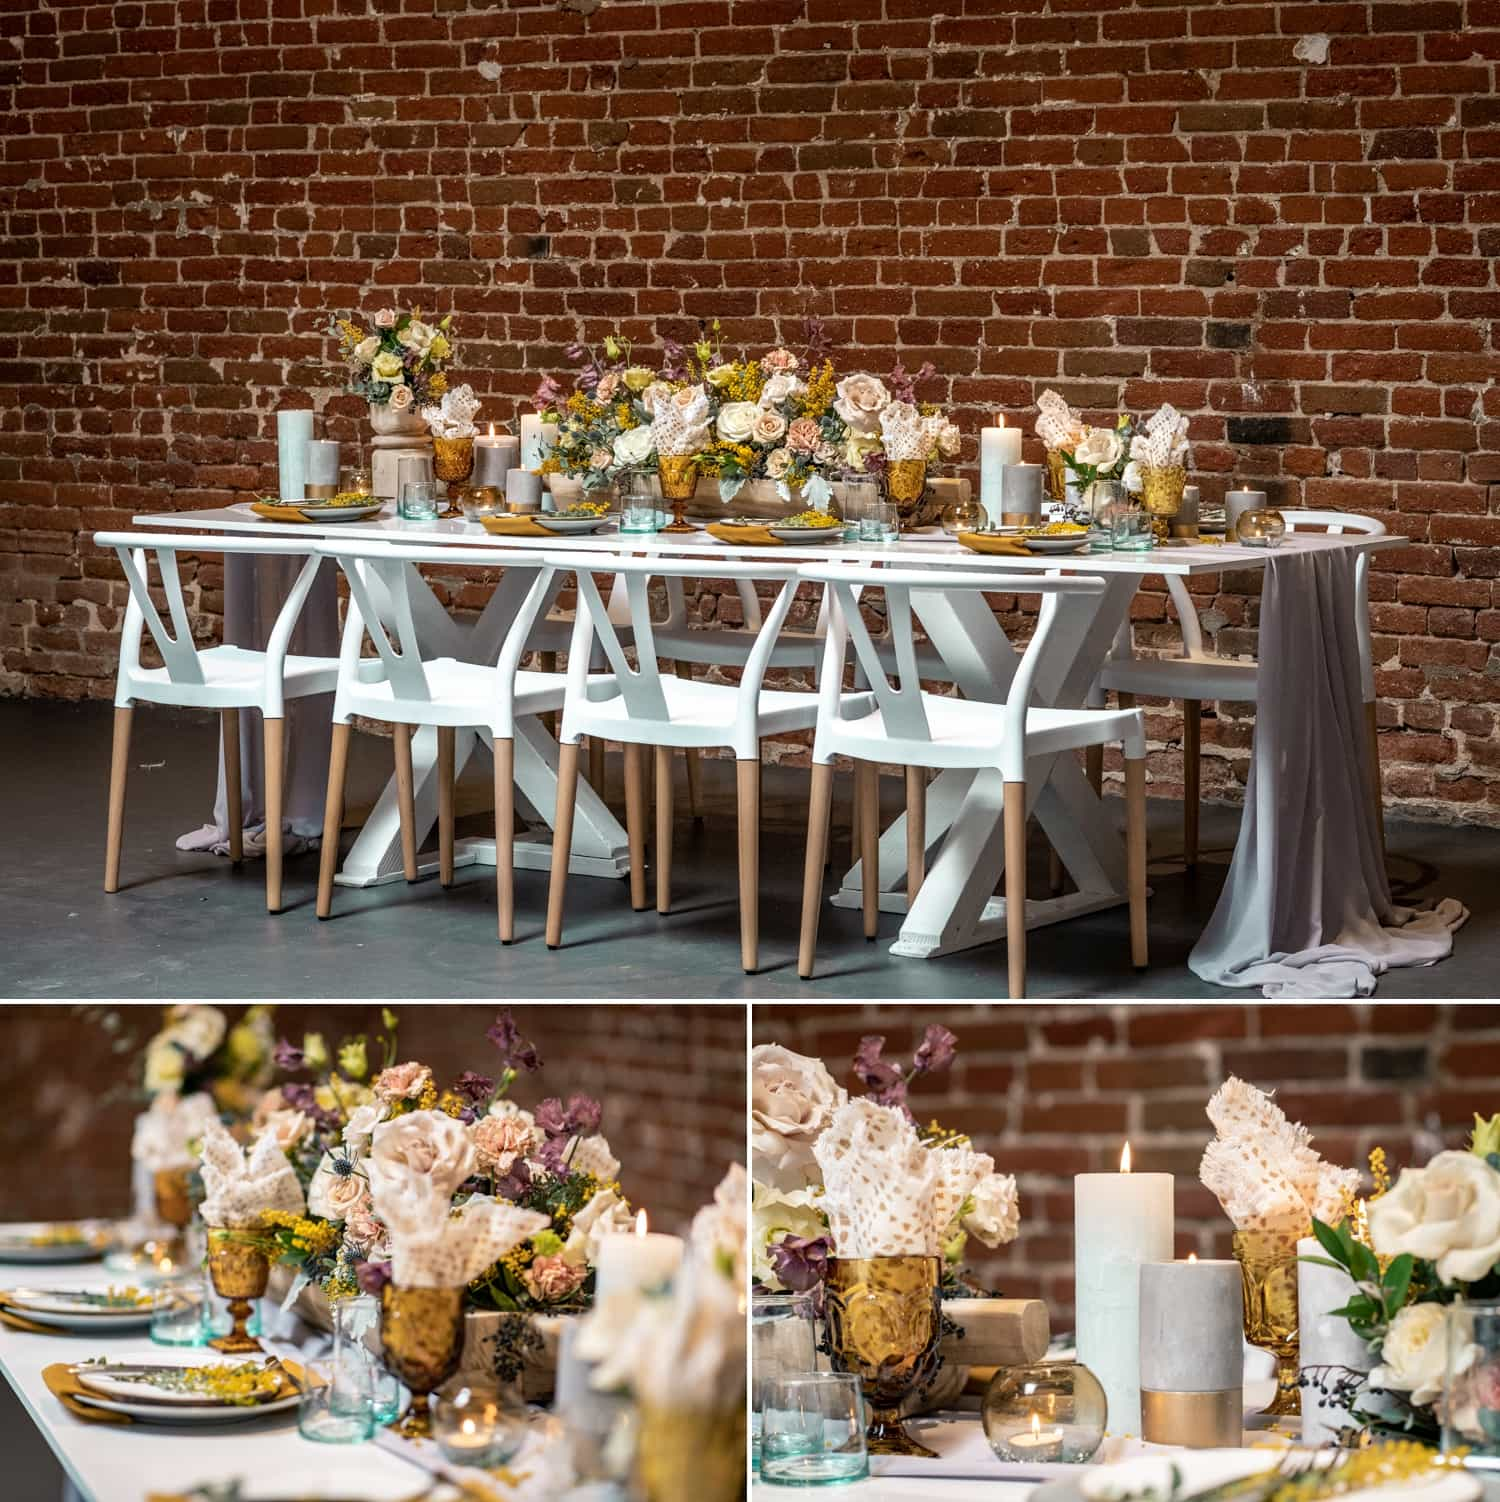 Tablescape set up at the Pannikin Building in San Diego, CA.